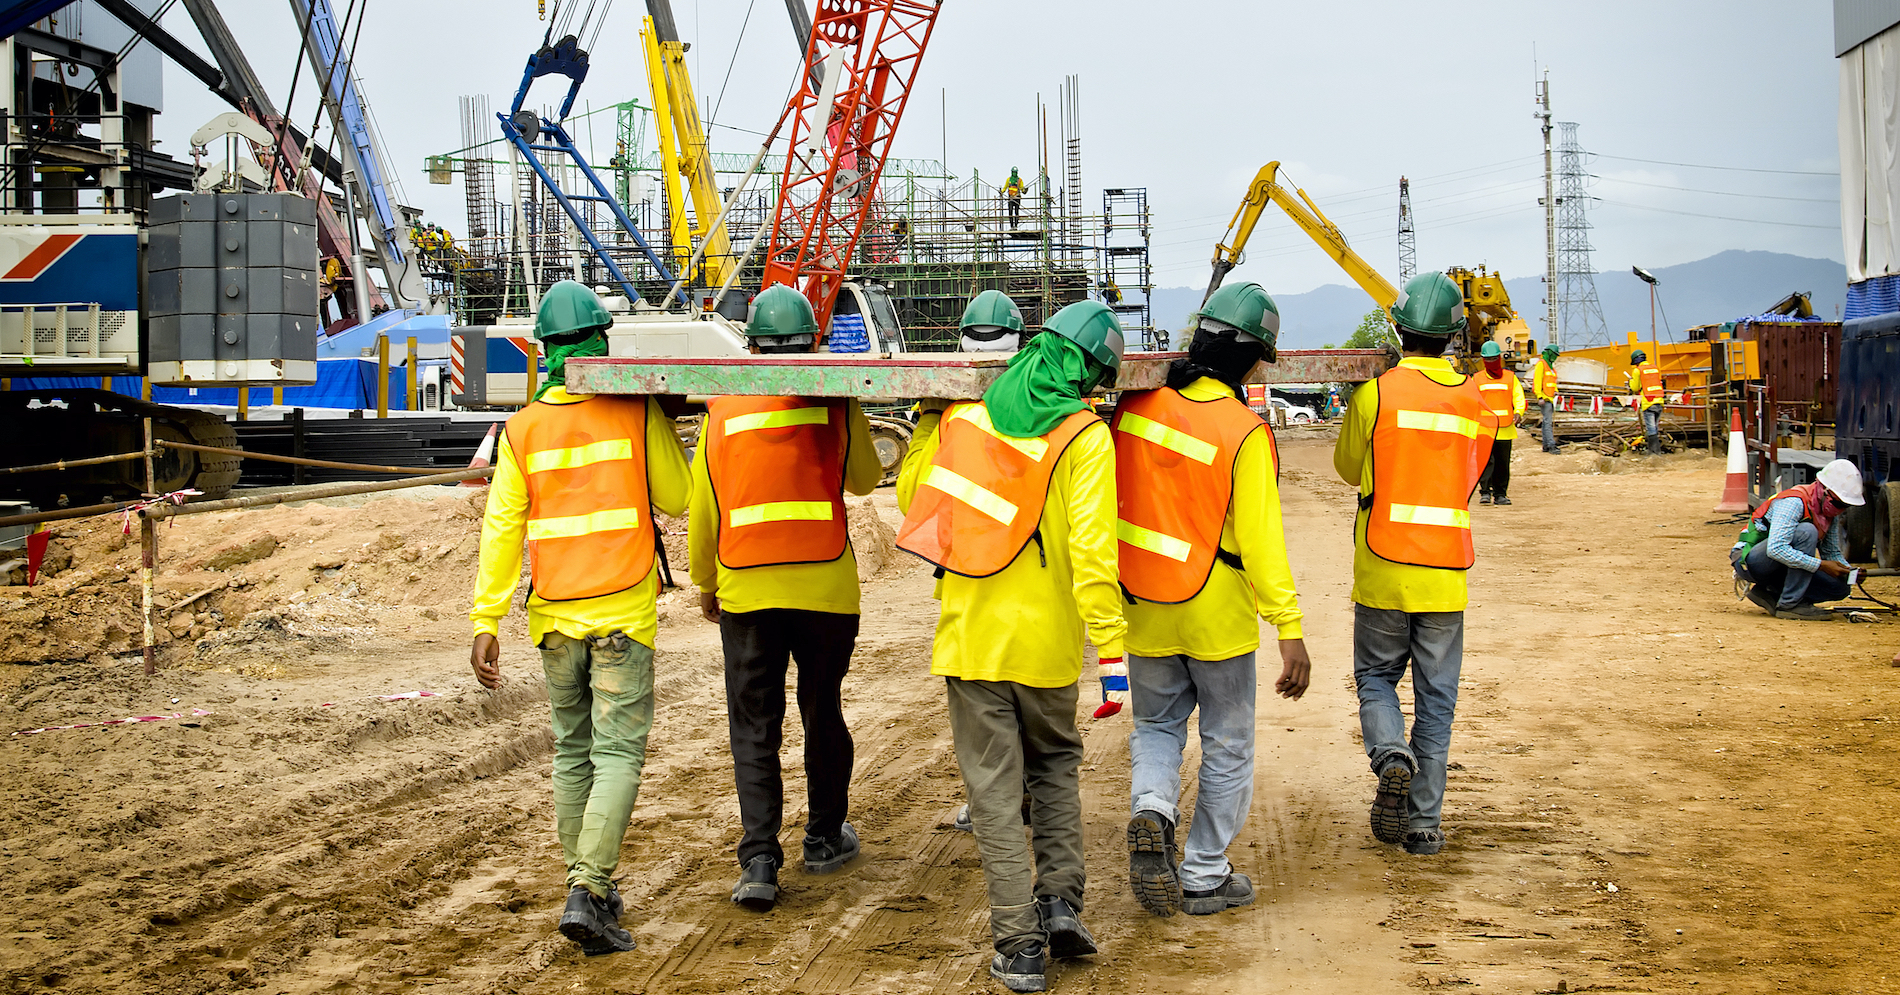 6 Safety Protocols Workers Commonly Neglect